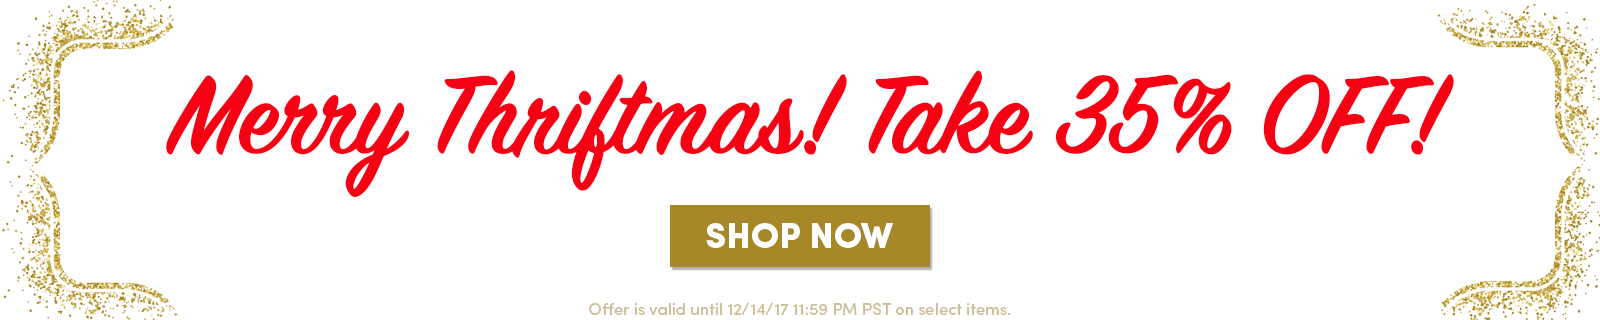 Merry Thriftmas!  Take 35% OFF! [Shop now]